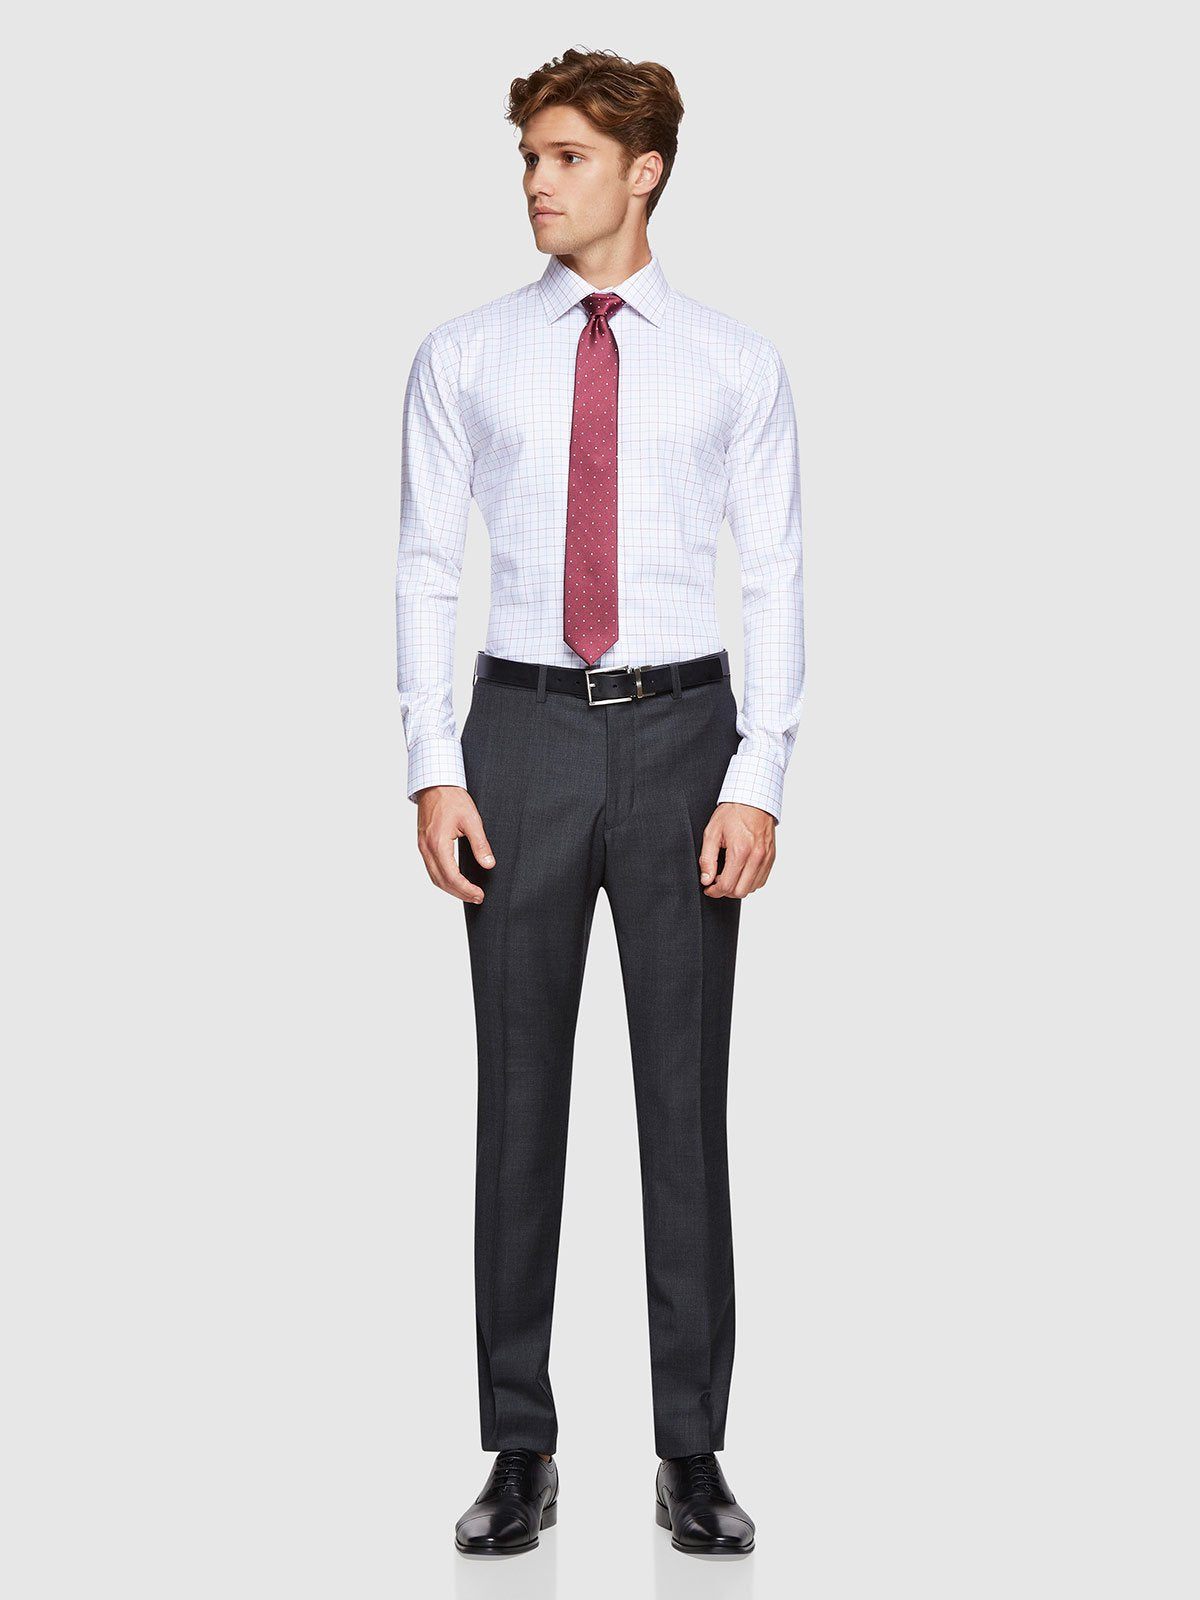 HOPKINS WOOL SUIT TROUSERS CHARCOAL